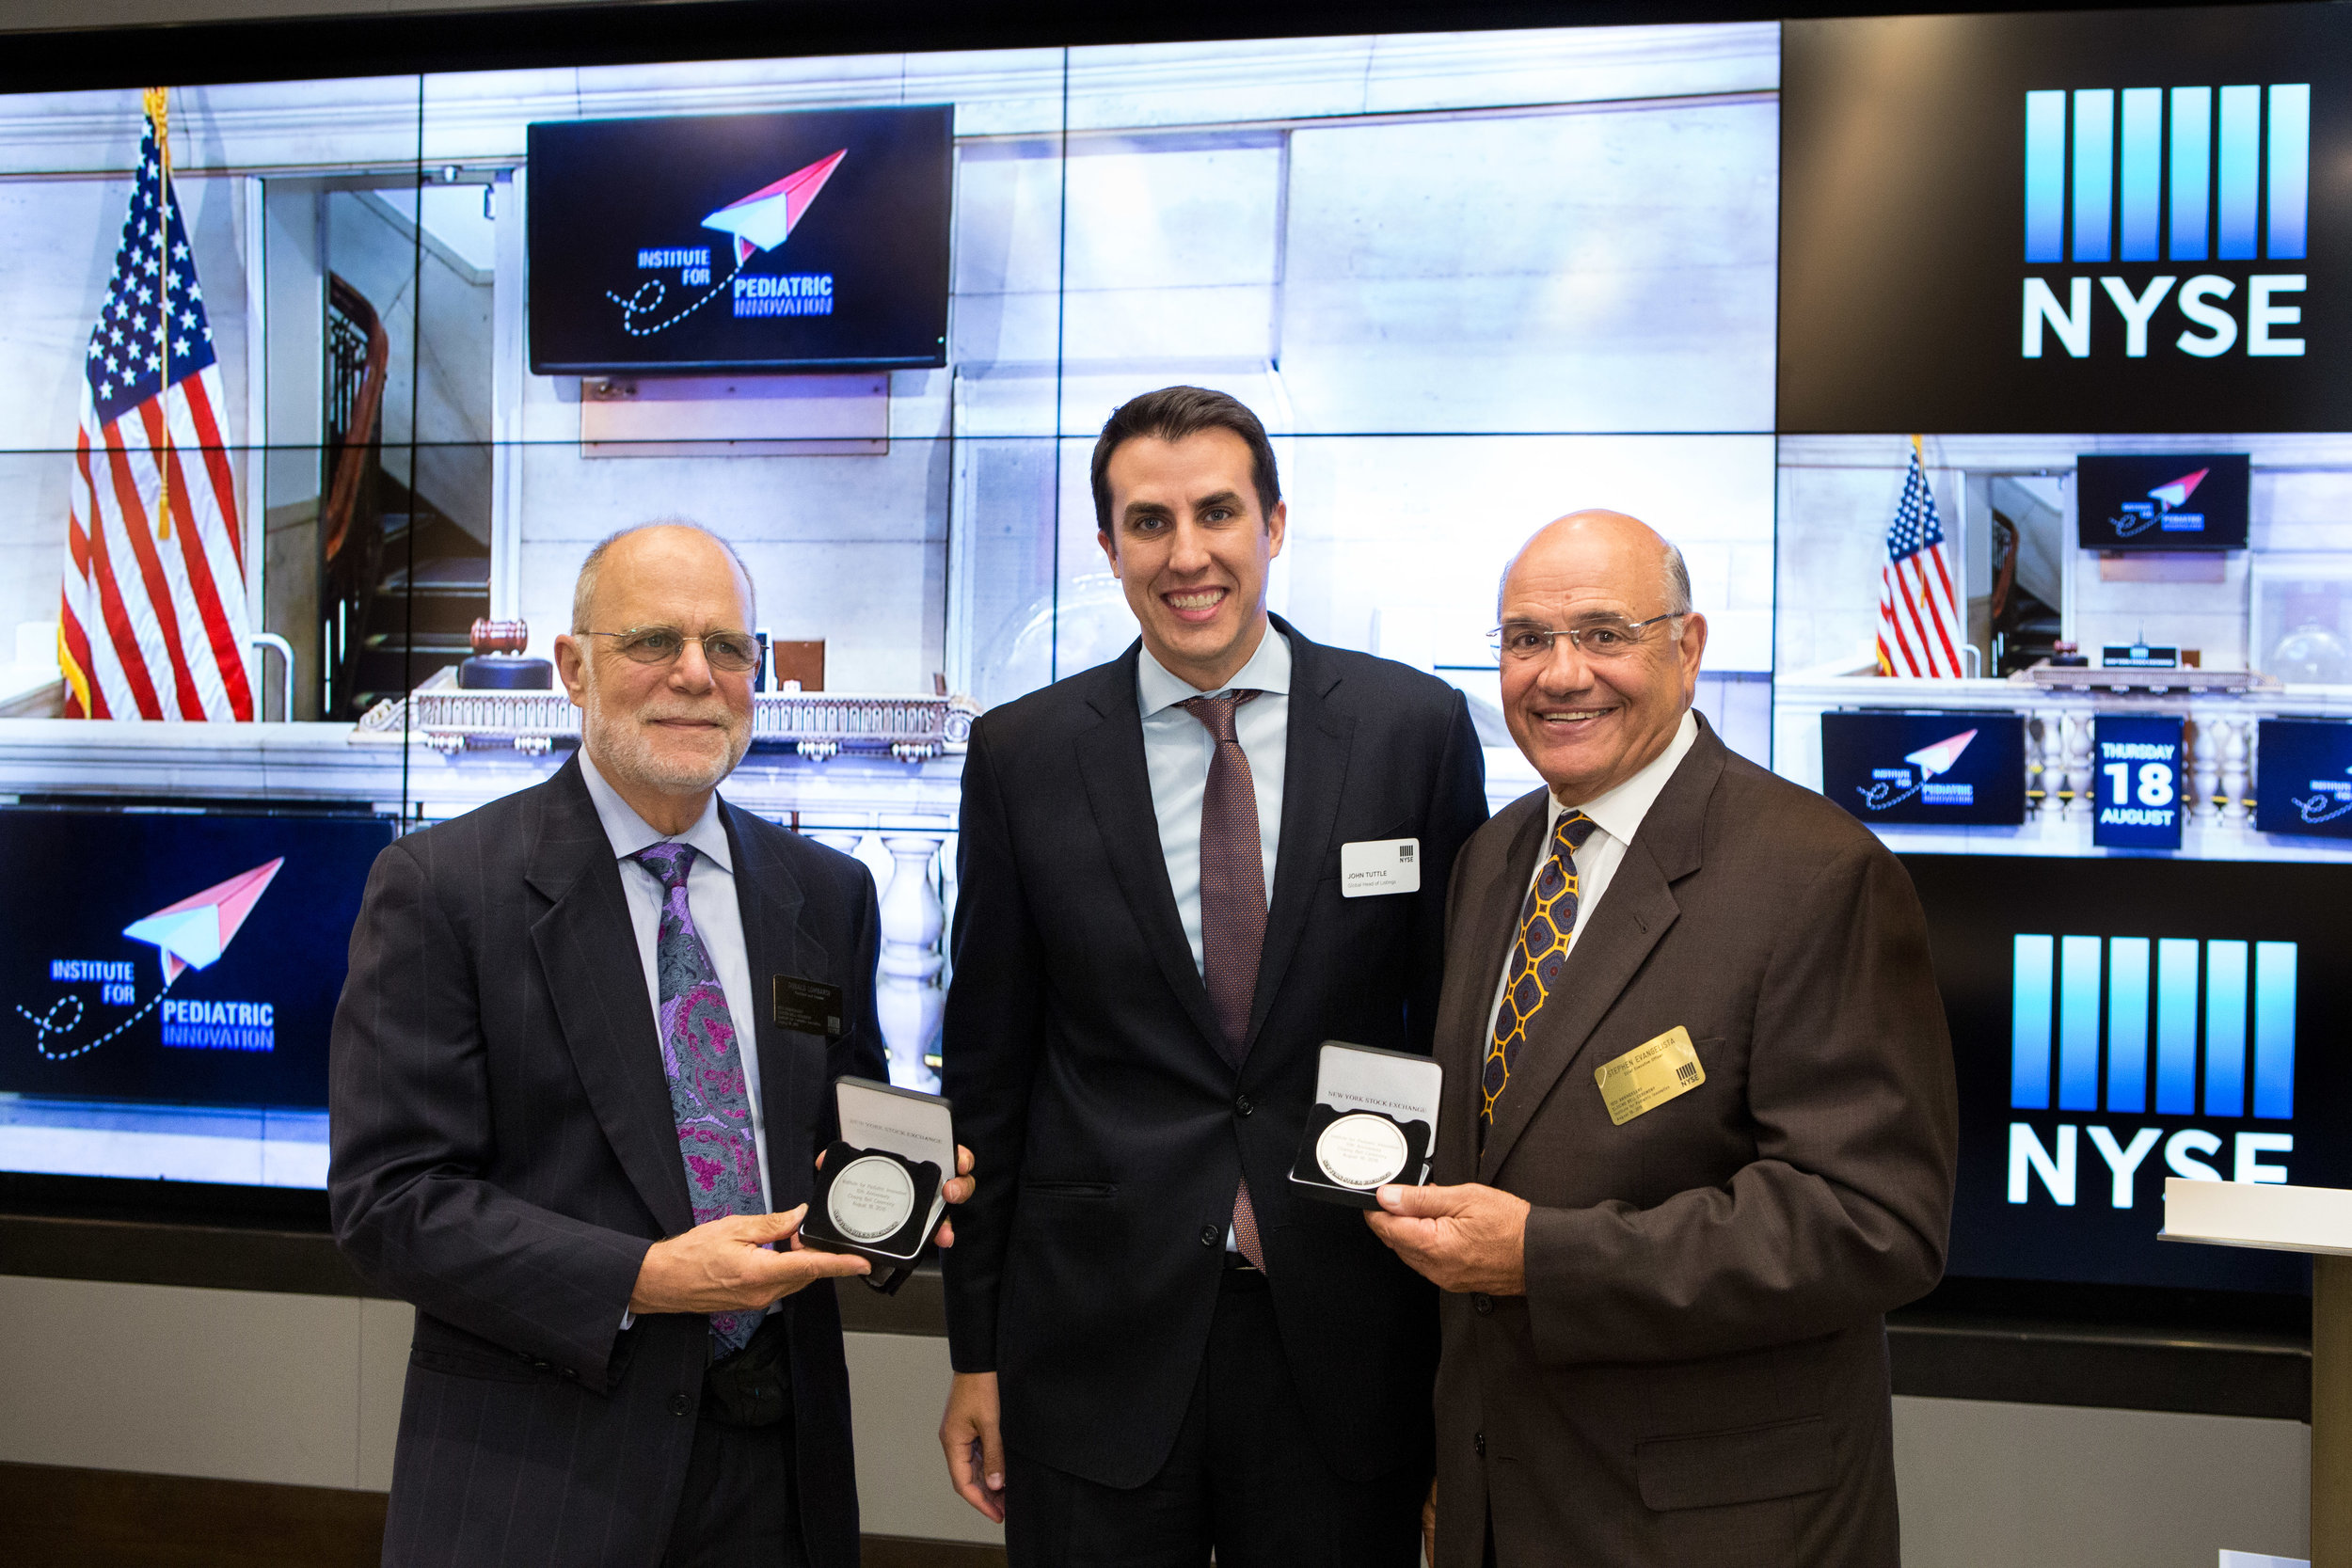 President and Founder Don Lombardi (left) and CEO Stephan Evangelista (right) show off their thank you medallions. Photo Credit: NYSE